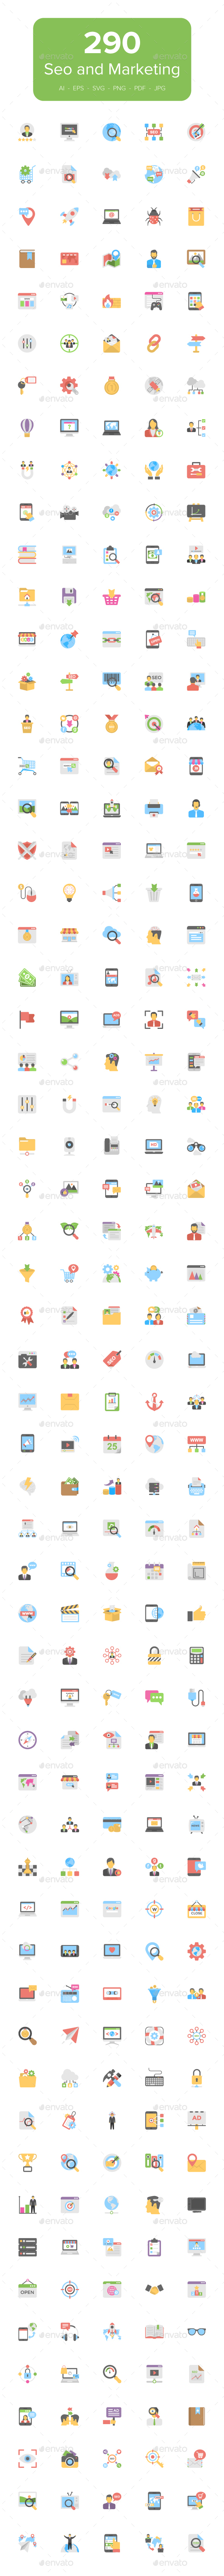 GraphicRiver 290 Flat Seo and Marketing Icons 20498960